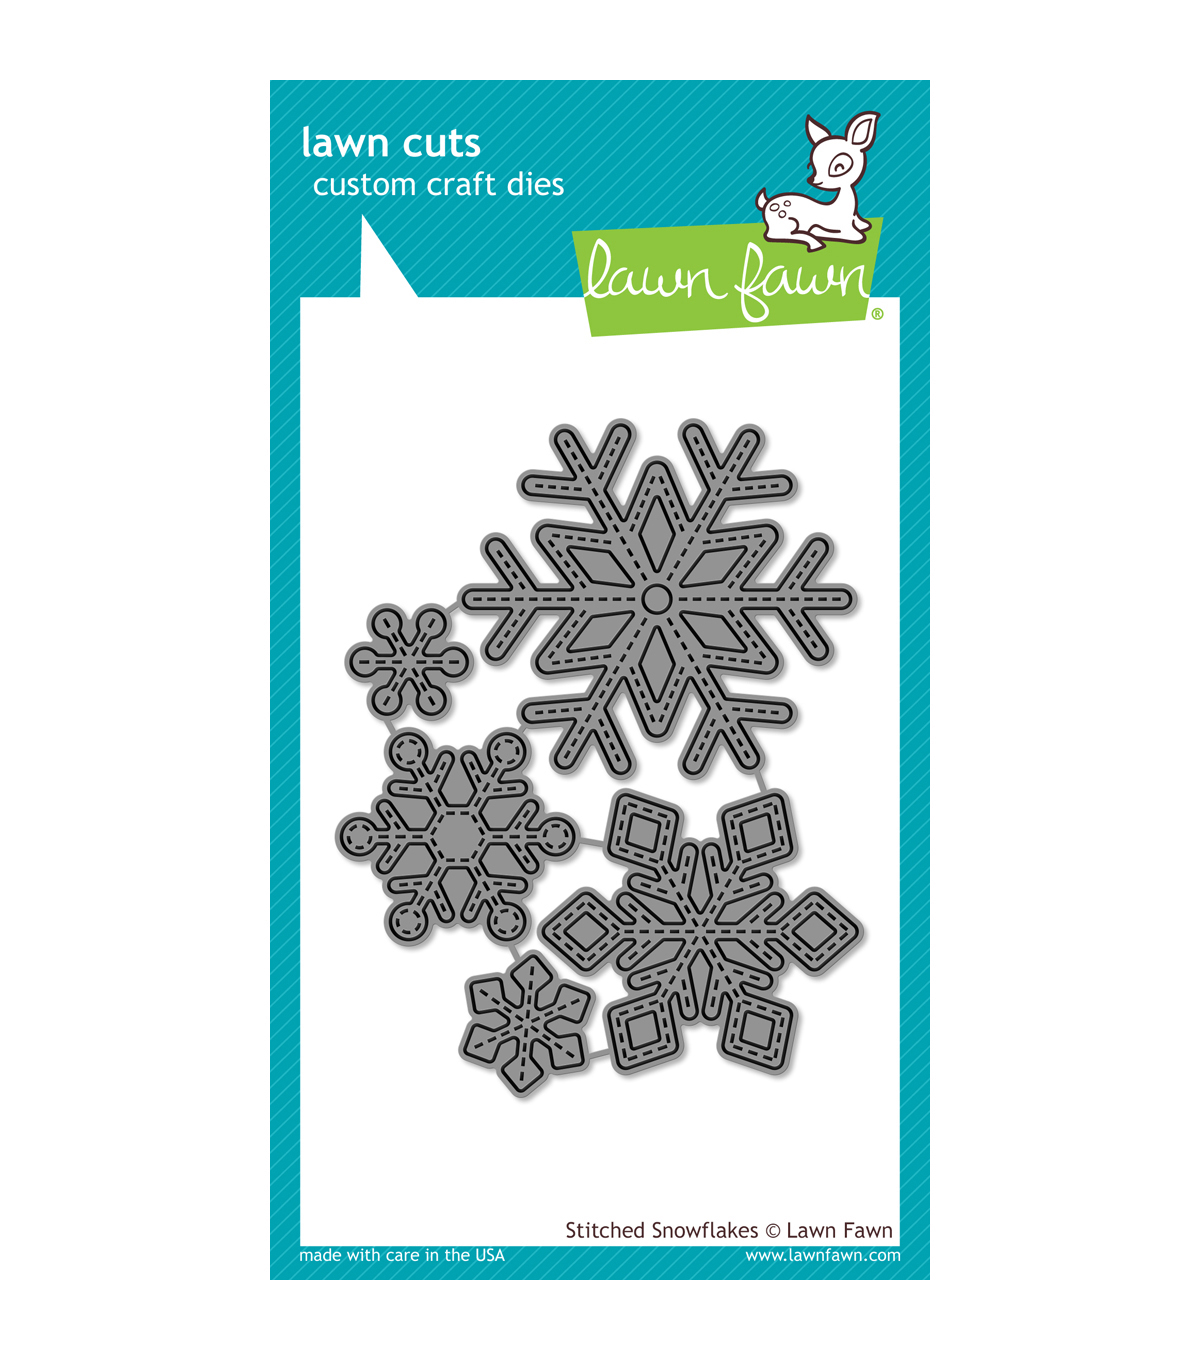 Lawn Fawn Lawn Cuts Custom Craft Die-Stitched Snowflakes